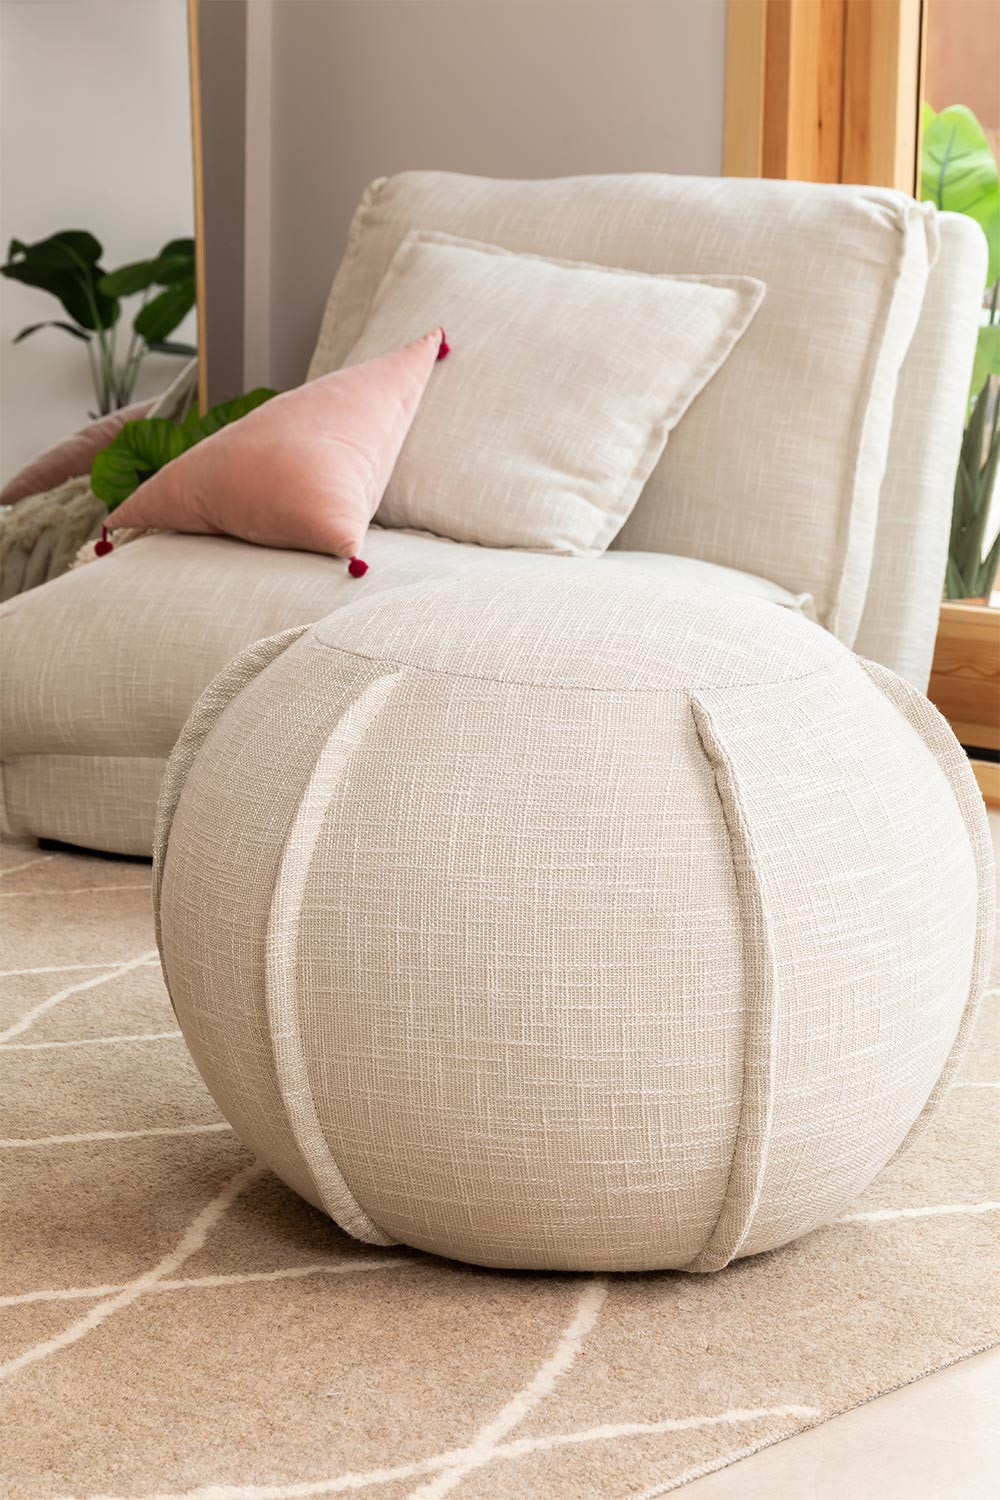 Round pouf in Salma fabric, gallery image 1